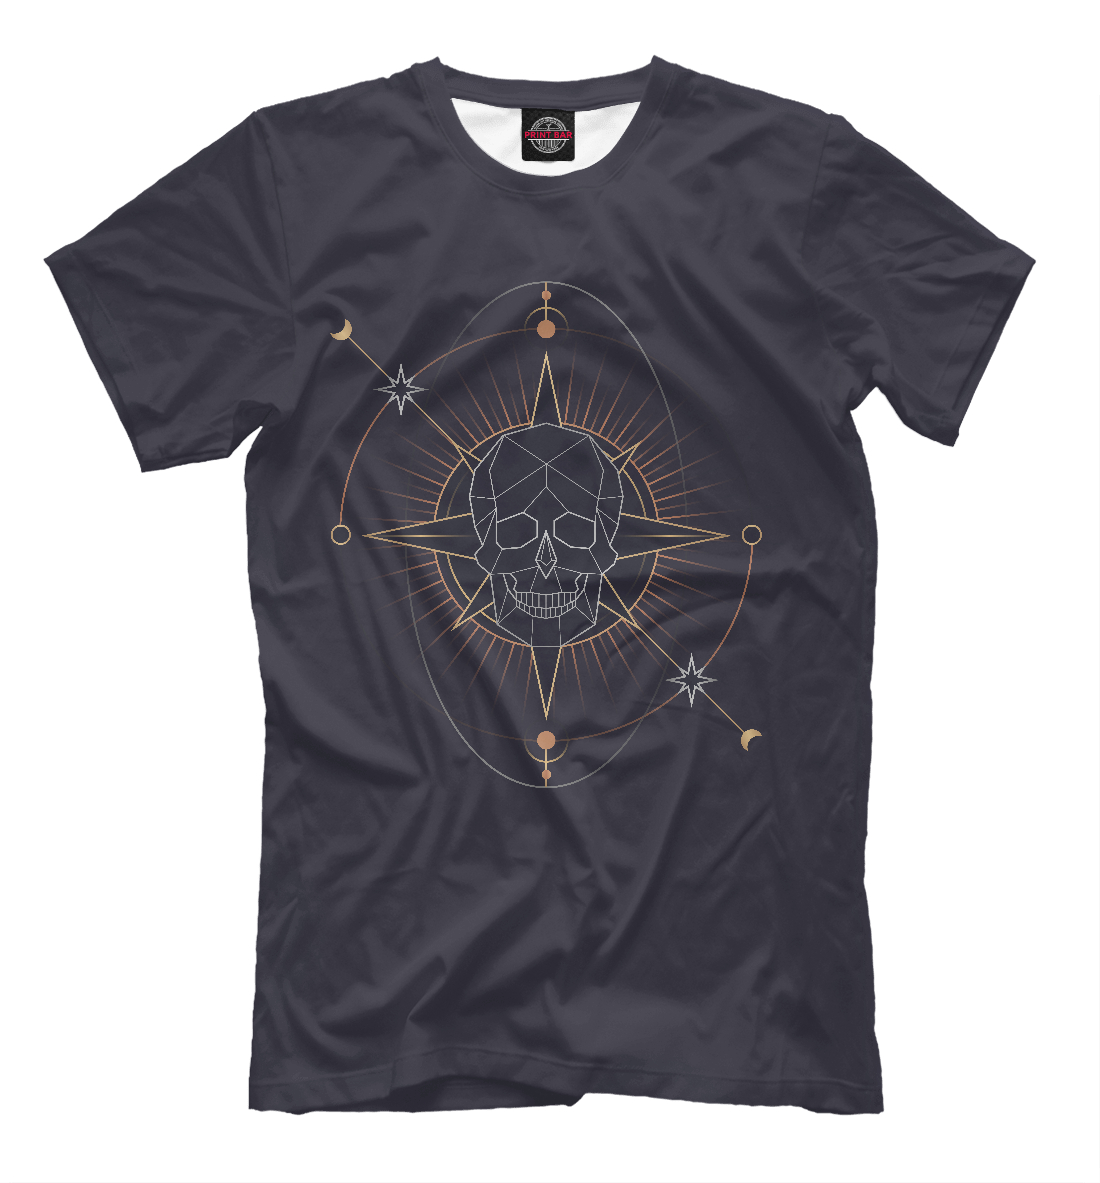 Купить Geometric astrological skull, Printbar, Футболки, HIP-579403-fut-2